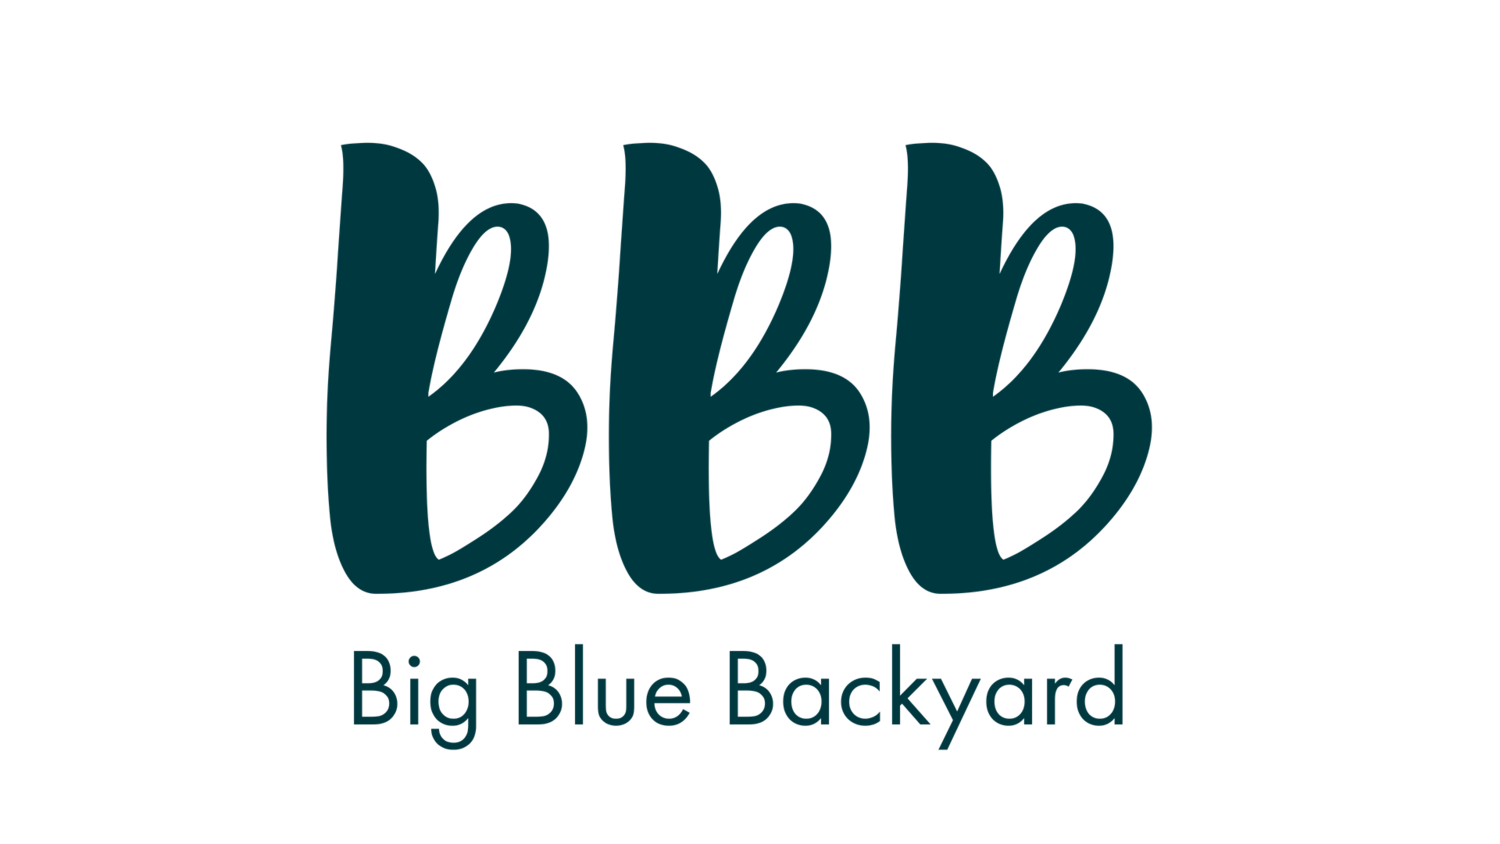 Big Blue Backyard